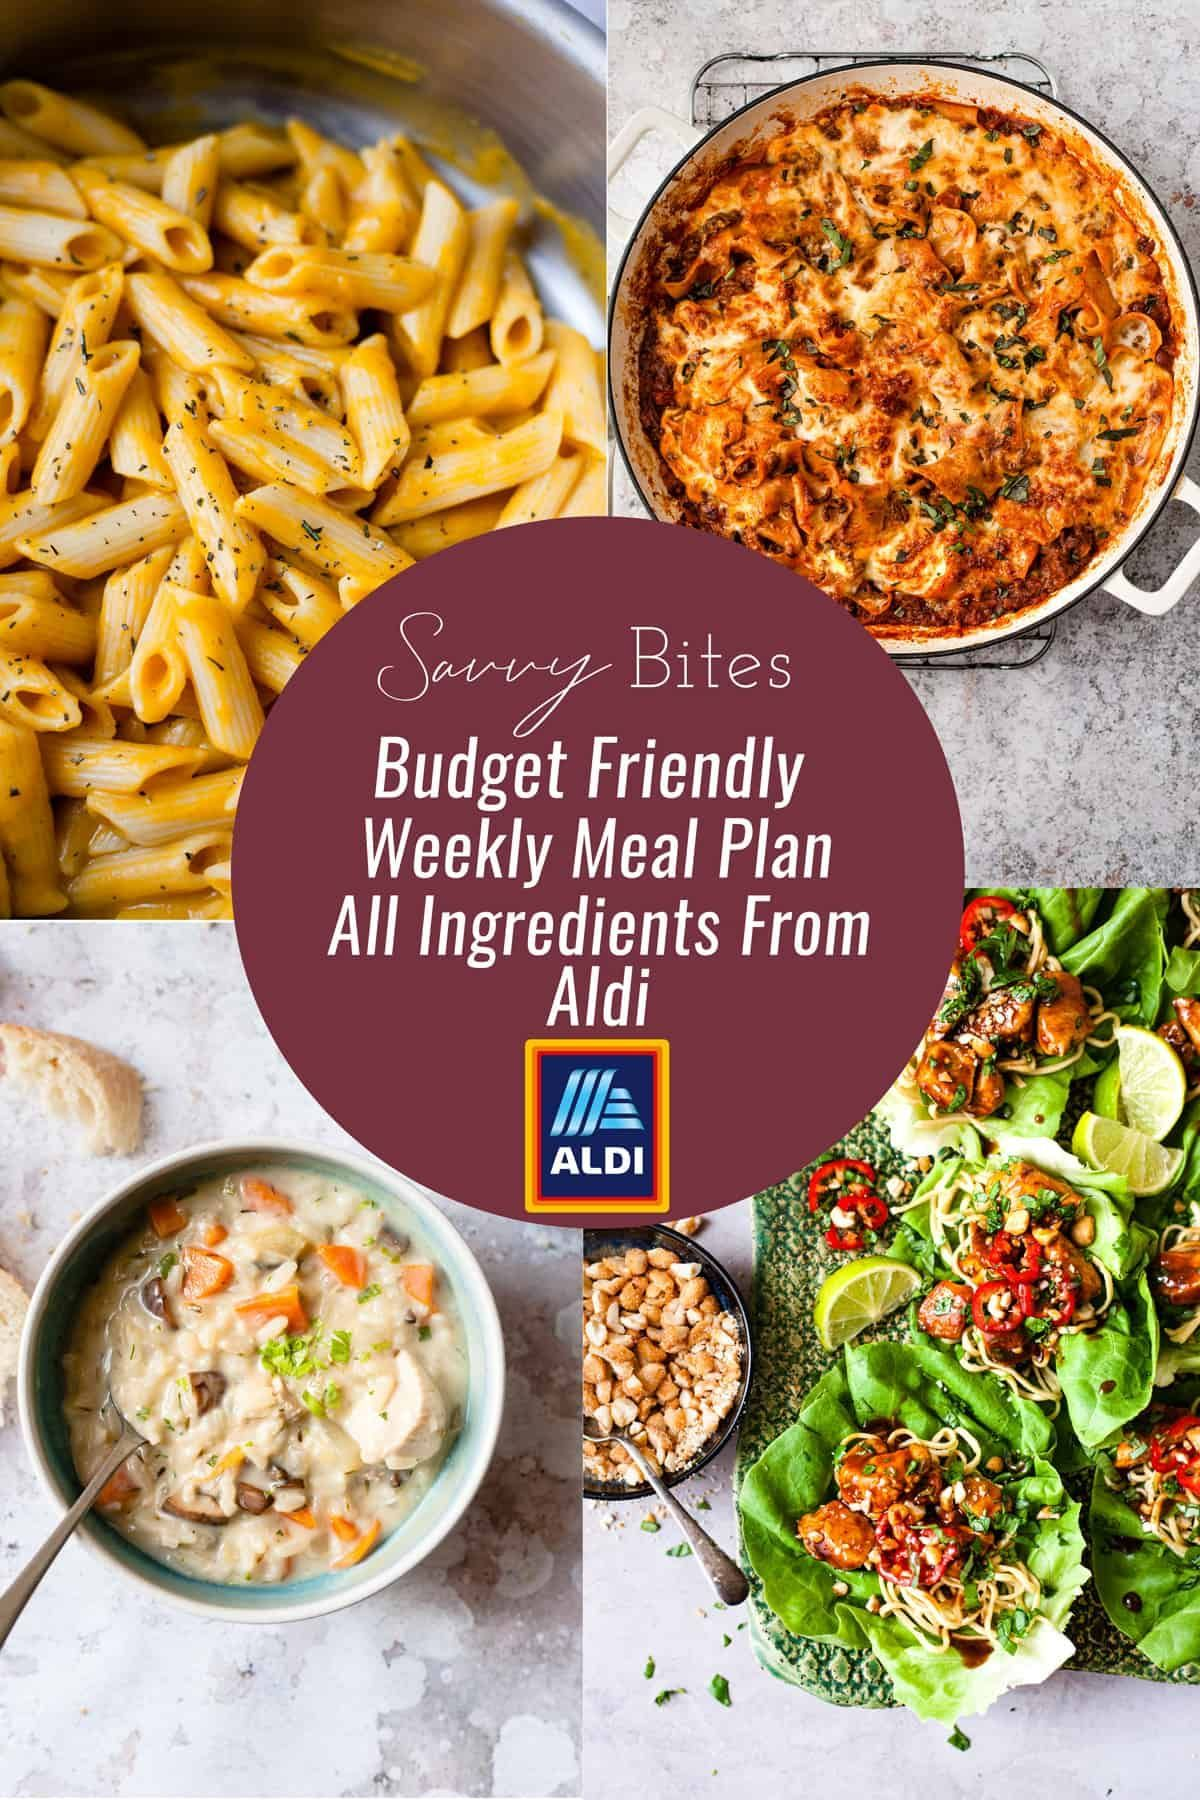 E Healthy Budget Weekly Menu For Families Using Only